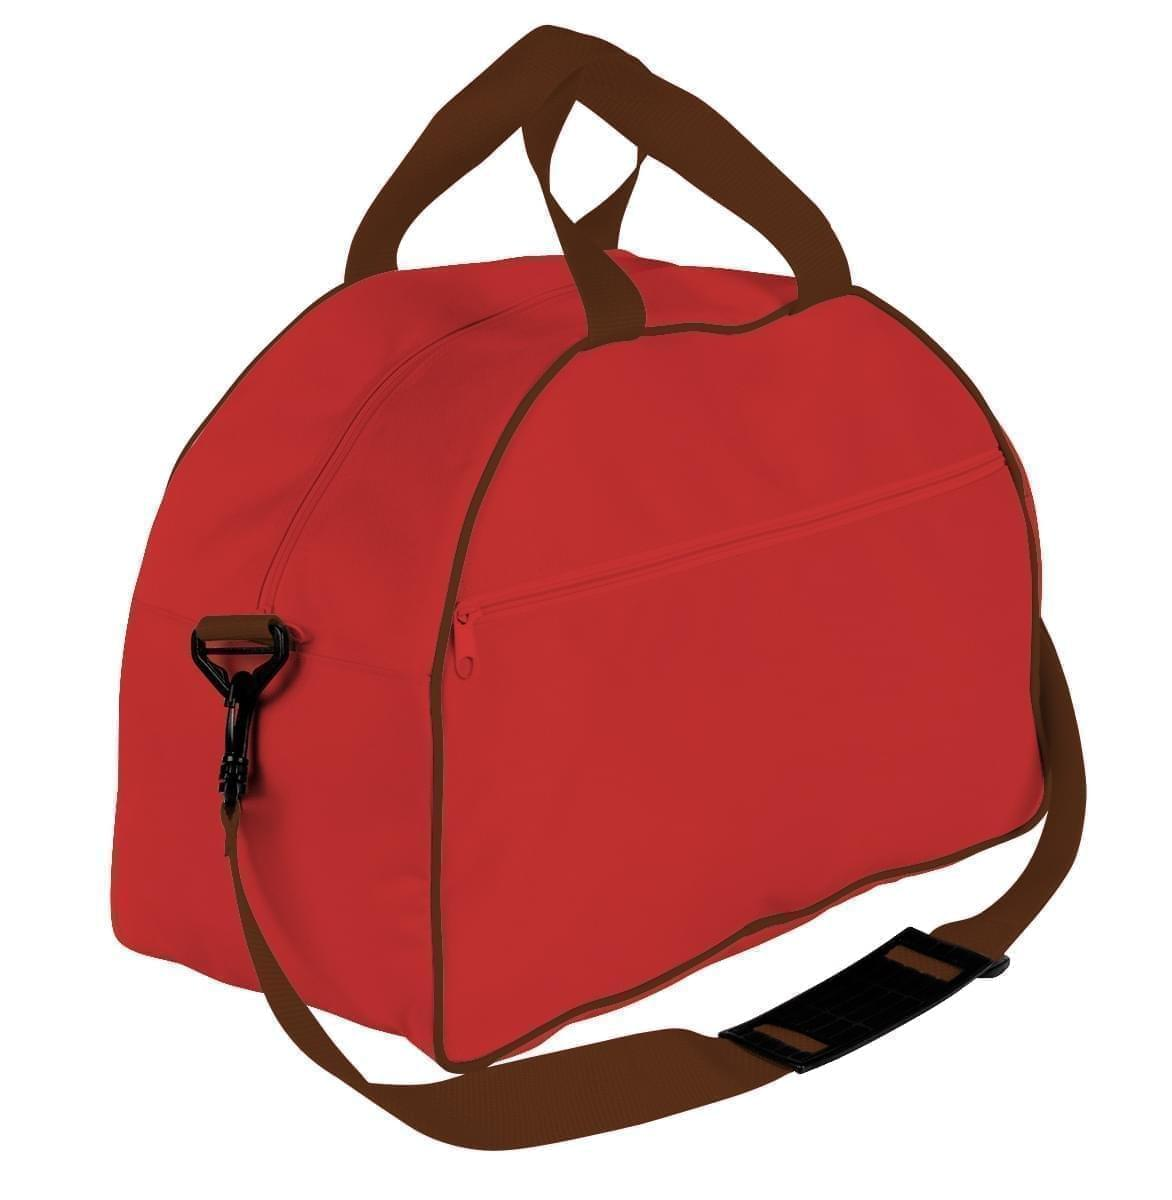 USA Made Nylon Poly Weekender Duffel Bags, Red-Brown, 6PKV32JAZS